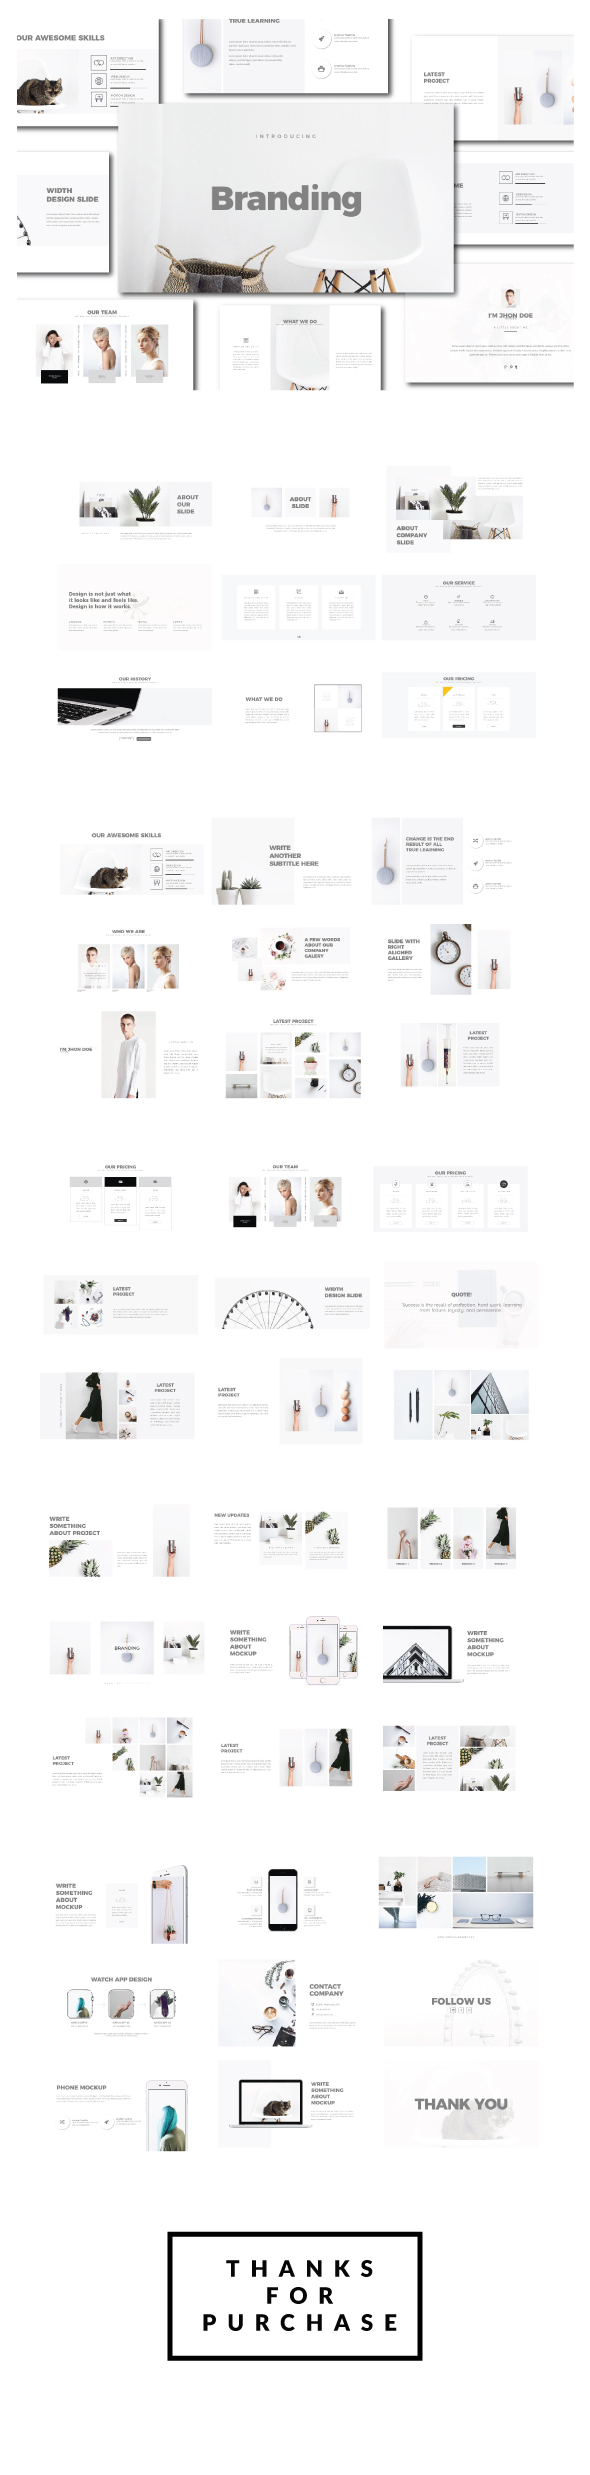 Branding Creative Agancy Powerpoint - Business PowerPoint Templates